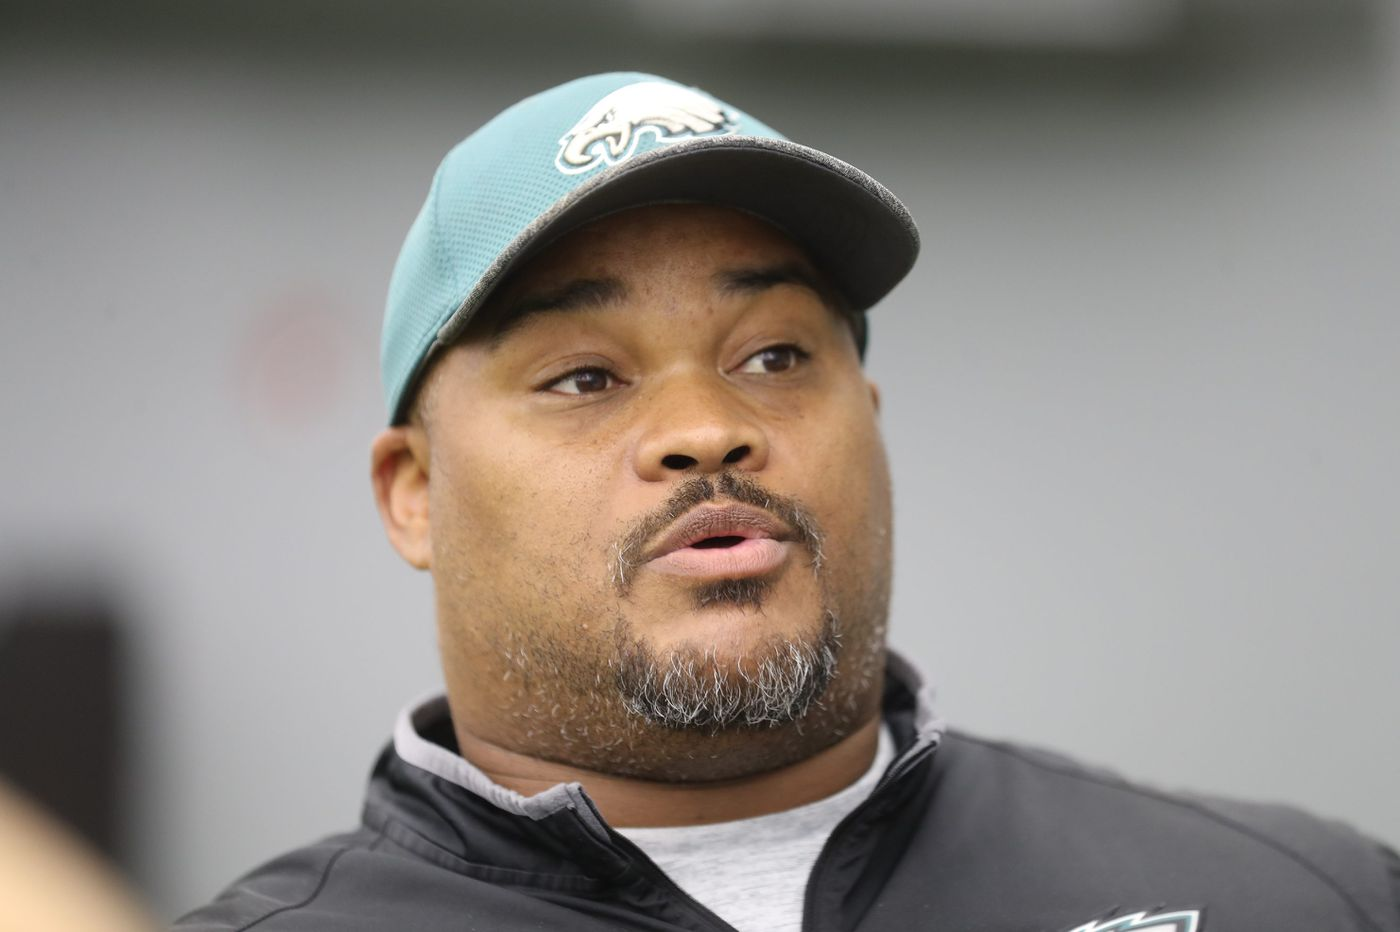 Duce Staley might not be Eagles' offensive coordinator, but he's confident about his new role